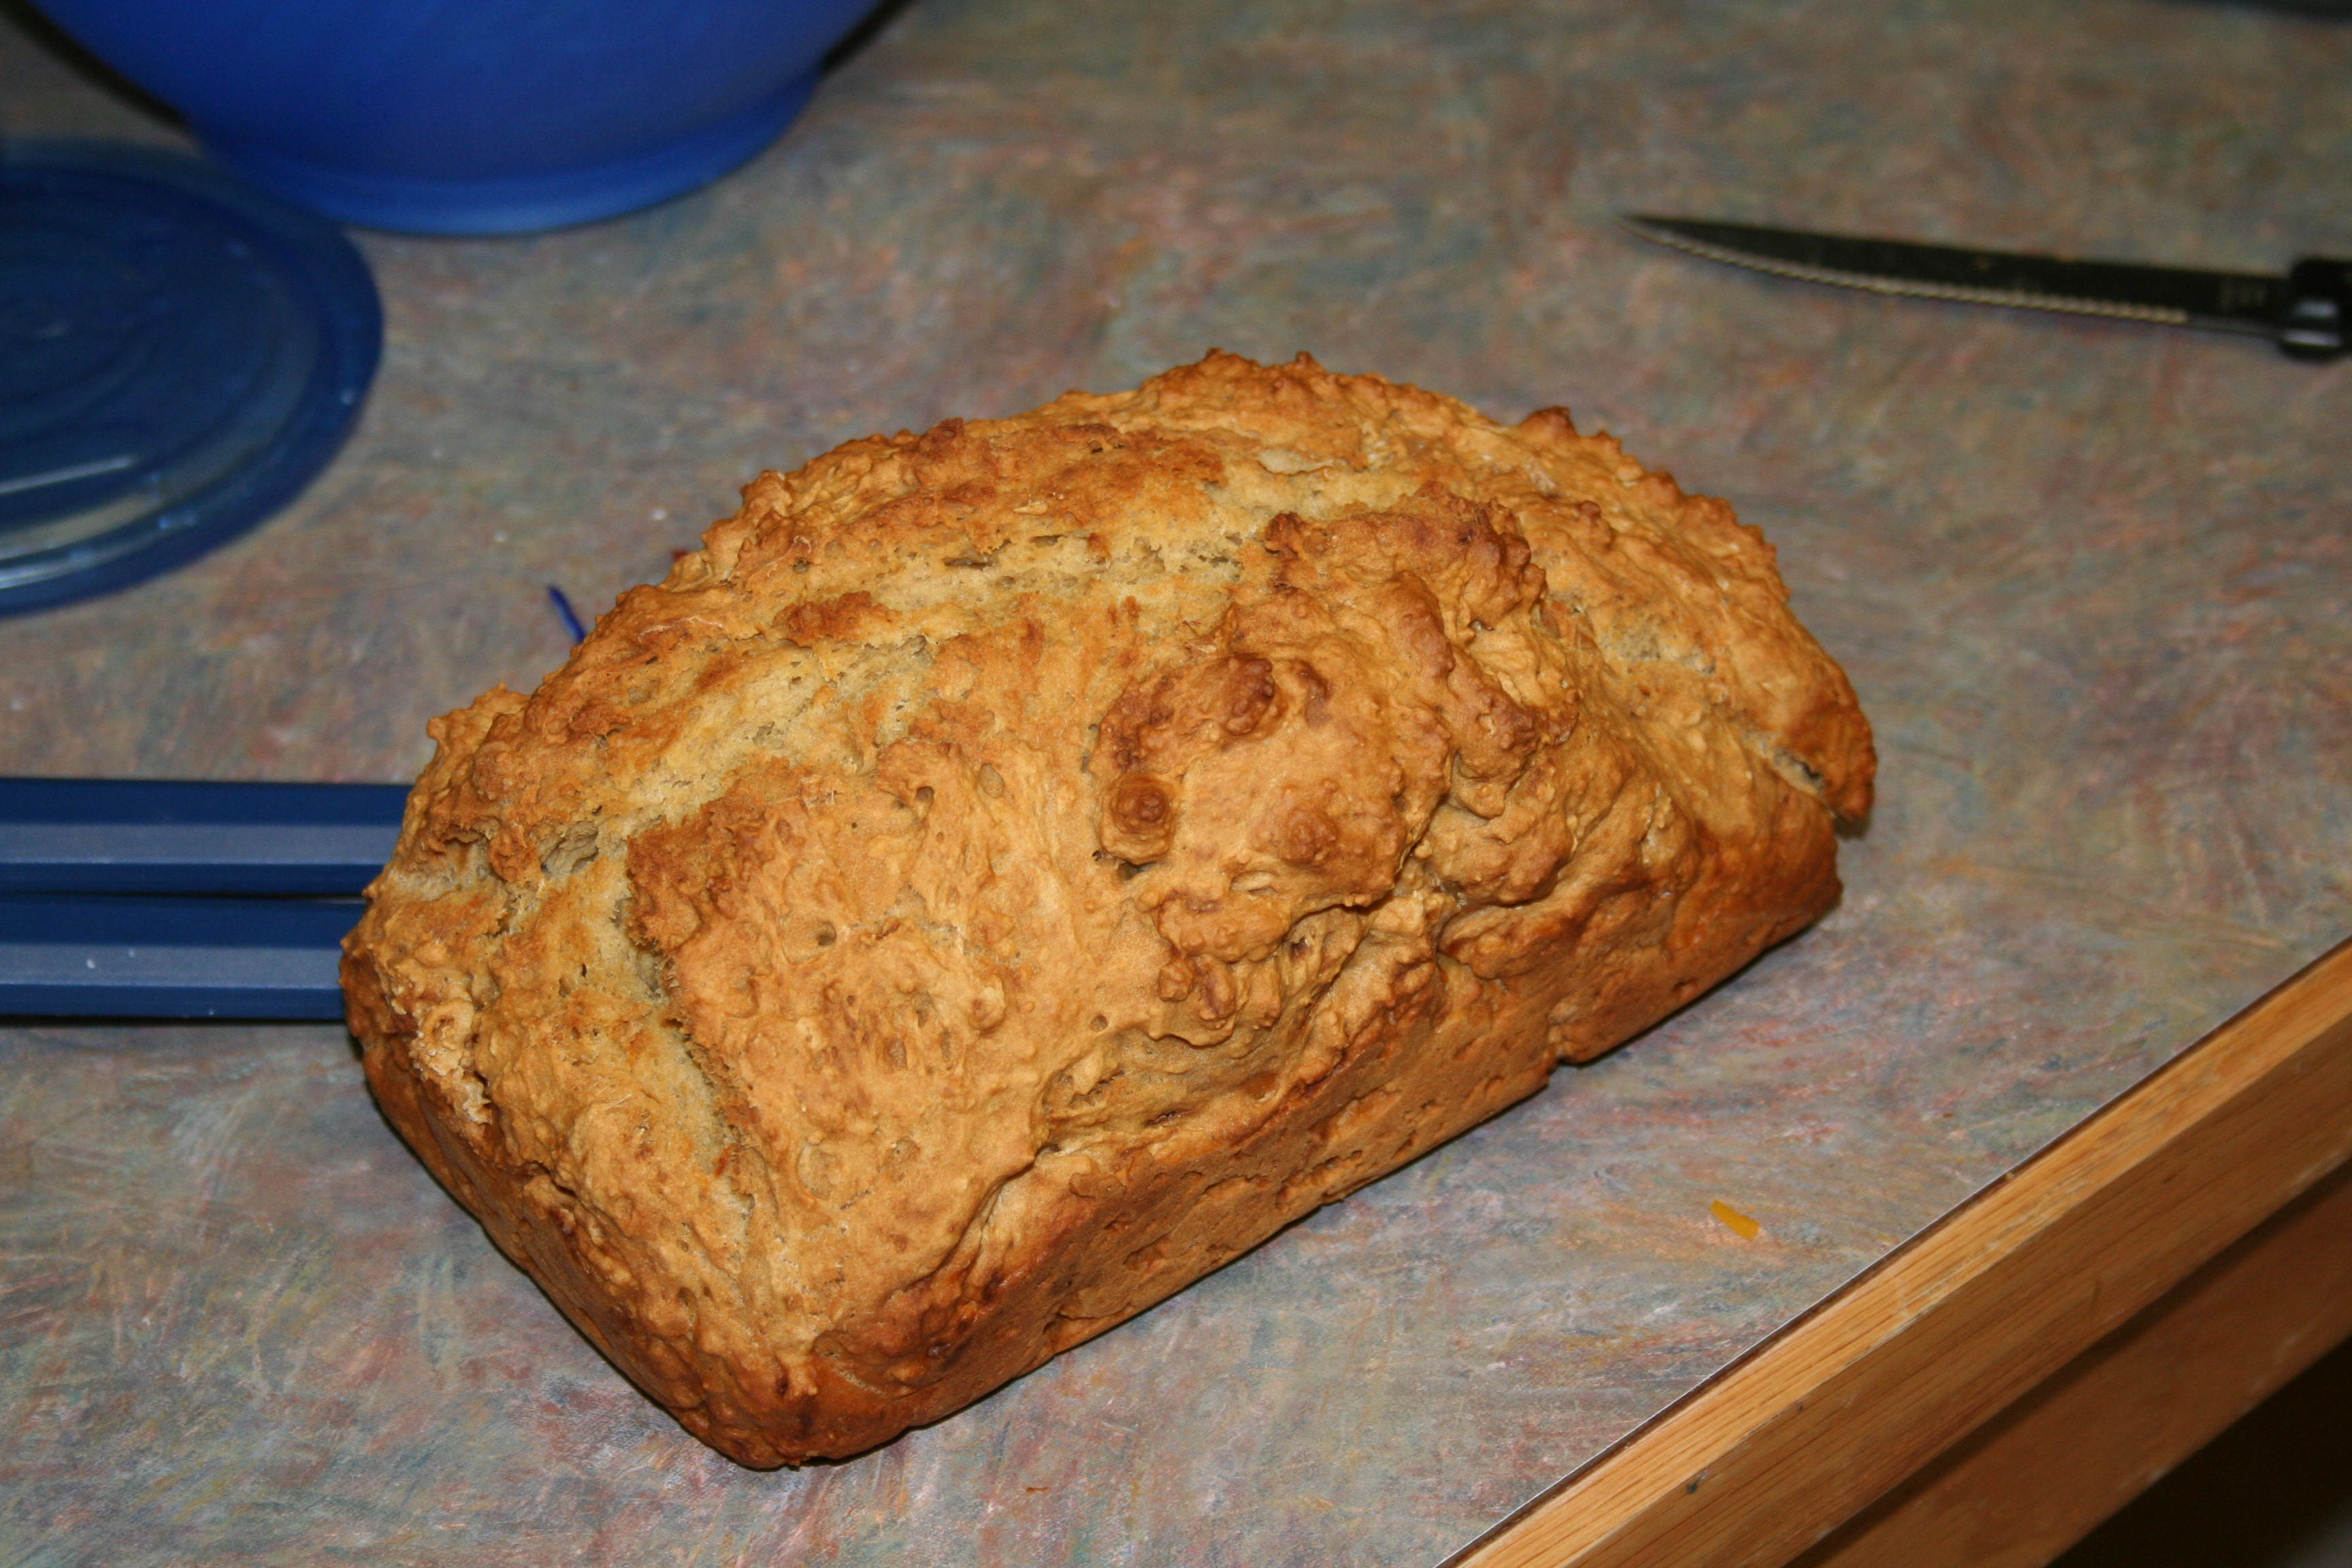 File:Beer Bread 1.jpg - Wikimedia Commons